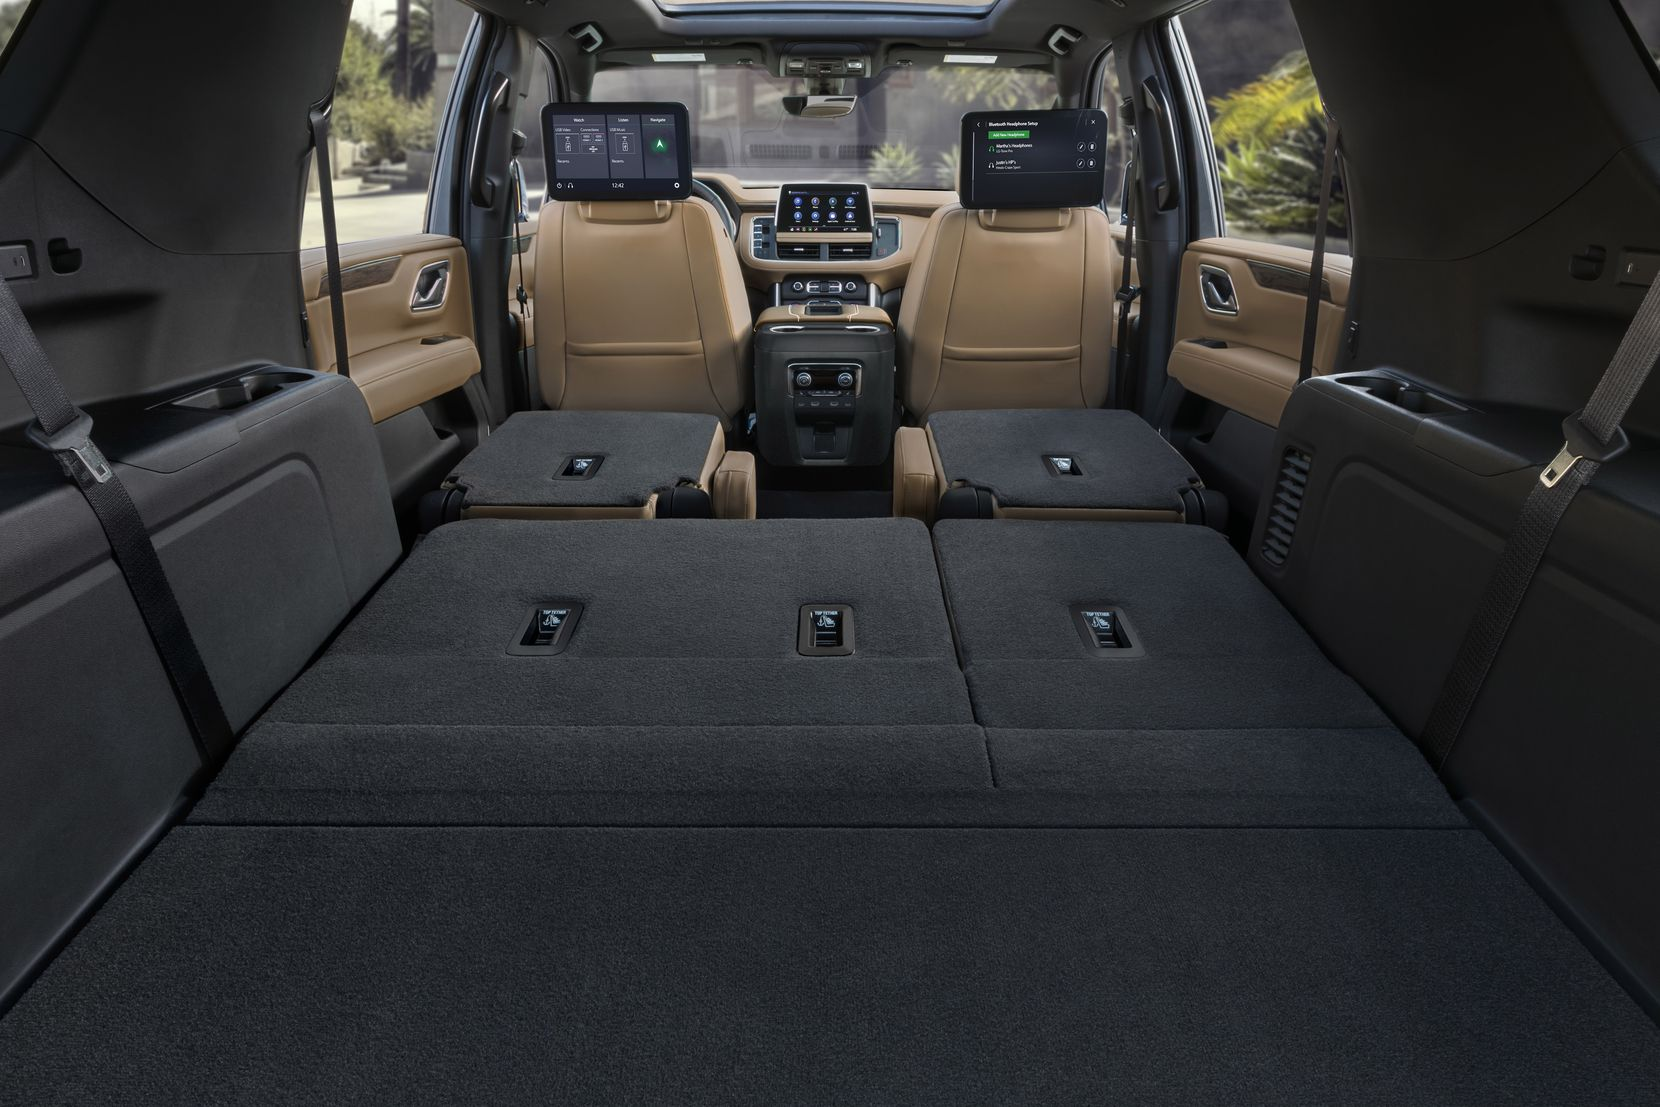 2021 Chevrolet Suburban with all seats folded down for maximum cargo capacity.